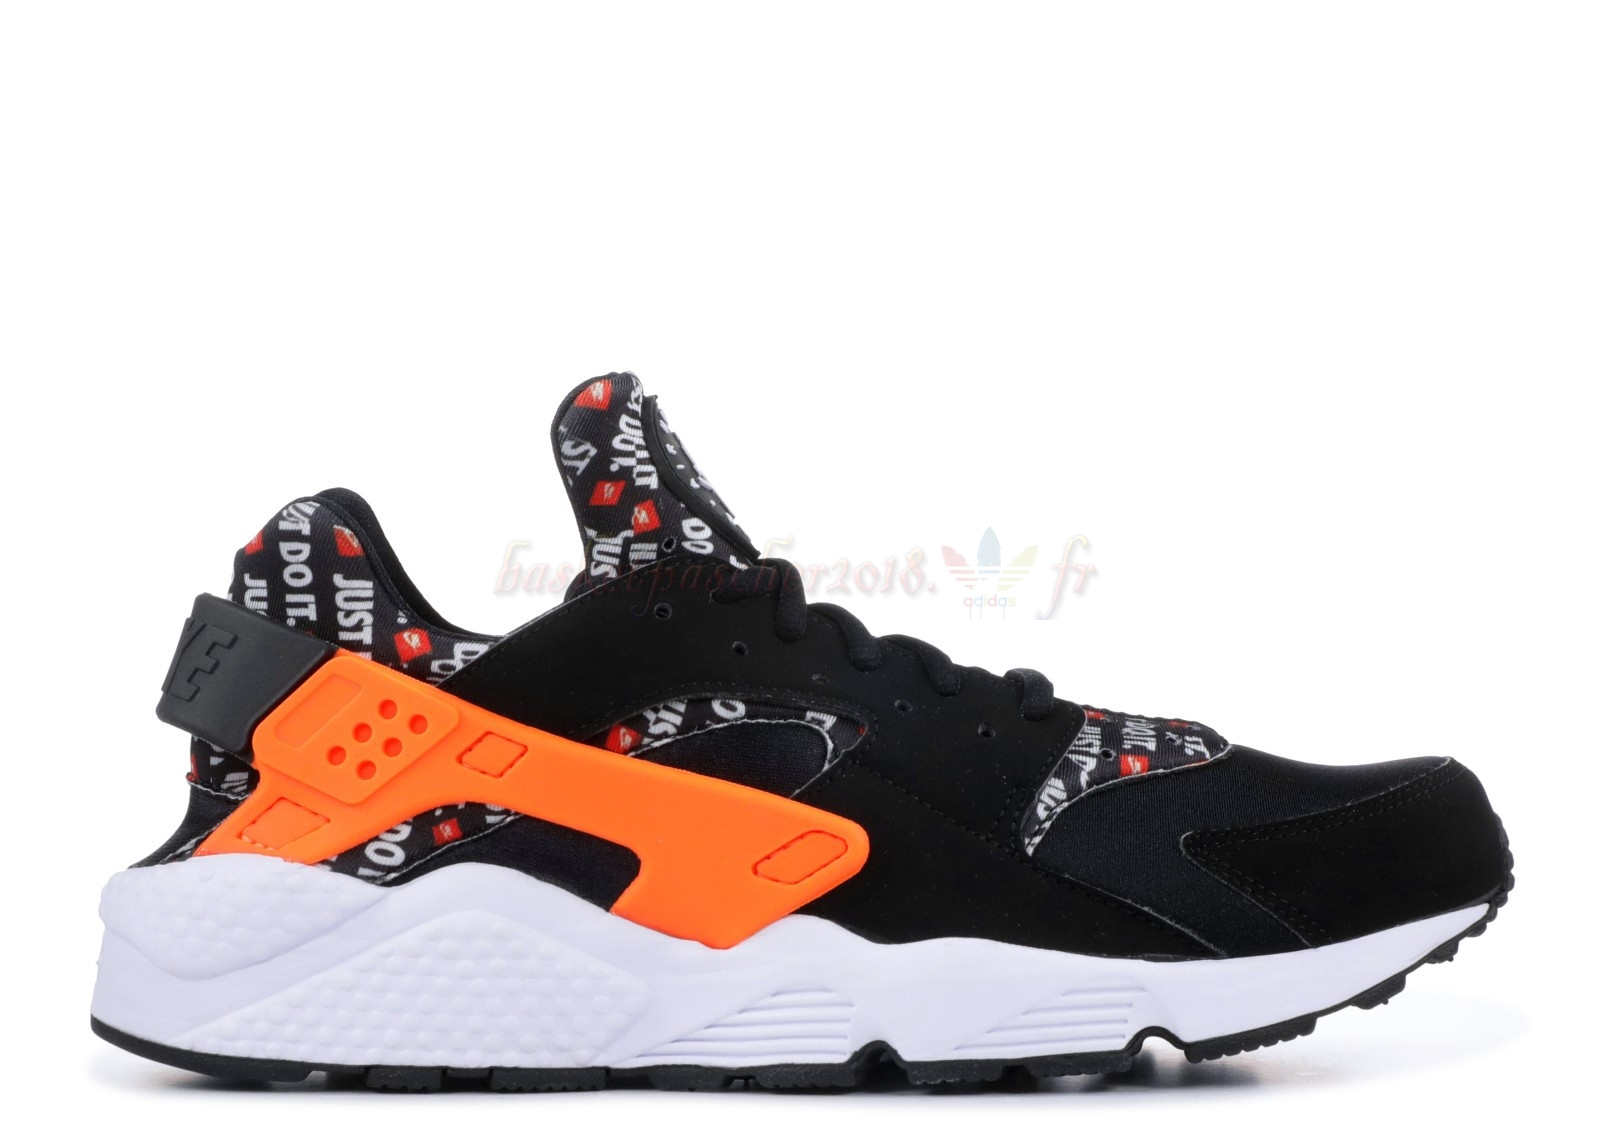 "Vente Chaude Chaussures De Basketball Homme Nike Air Huarache Run ""Just Do It"" Noir Orange (at5017-001) Pas Cher"